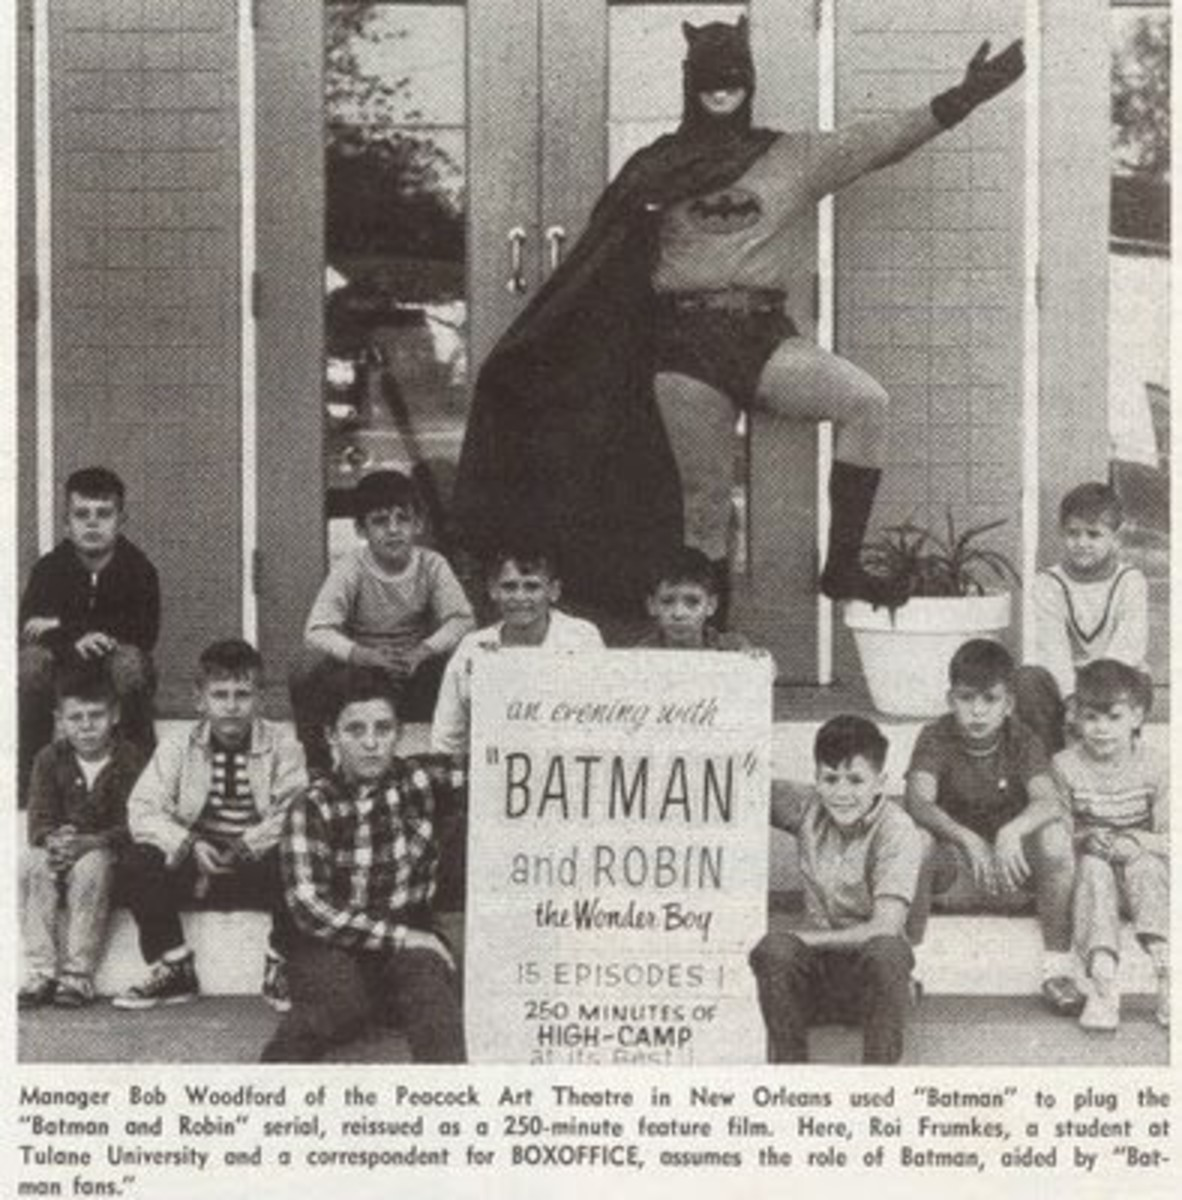 """A photo taken at a showing of """"An Evening with Batman and Robin"""""""